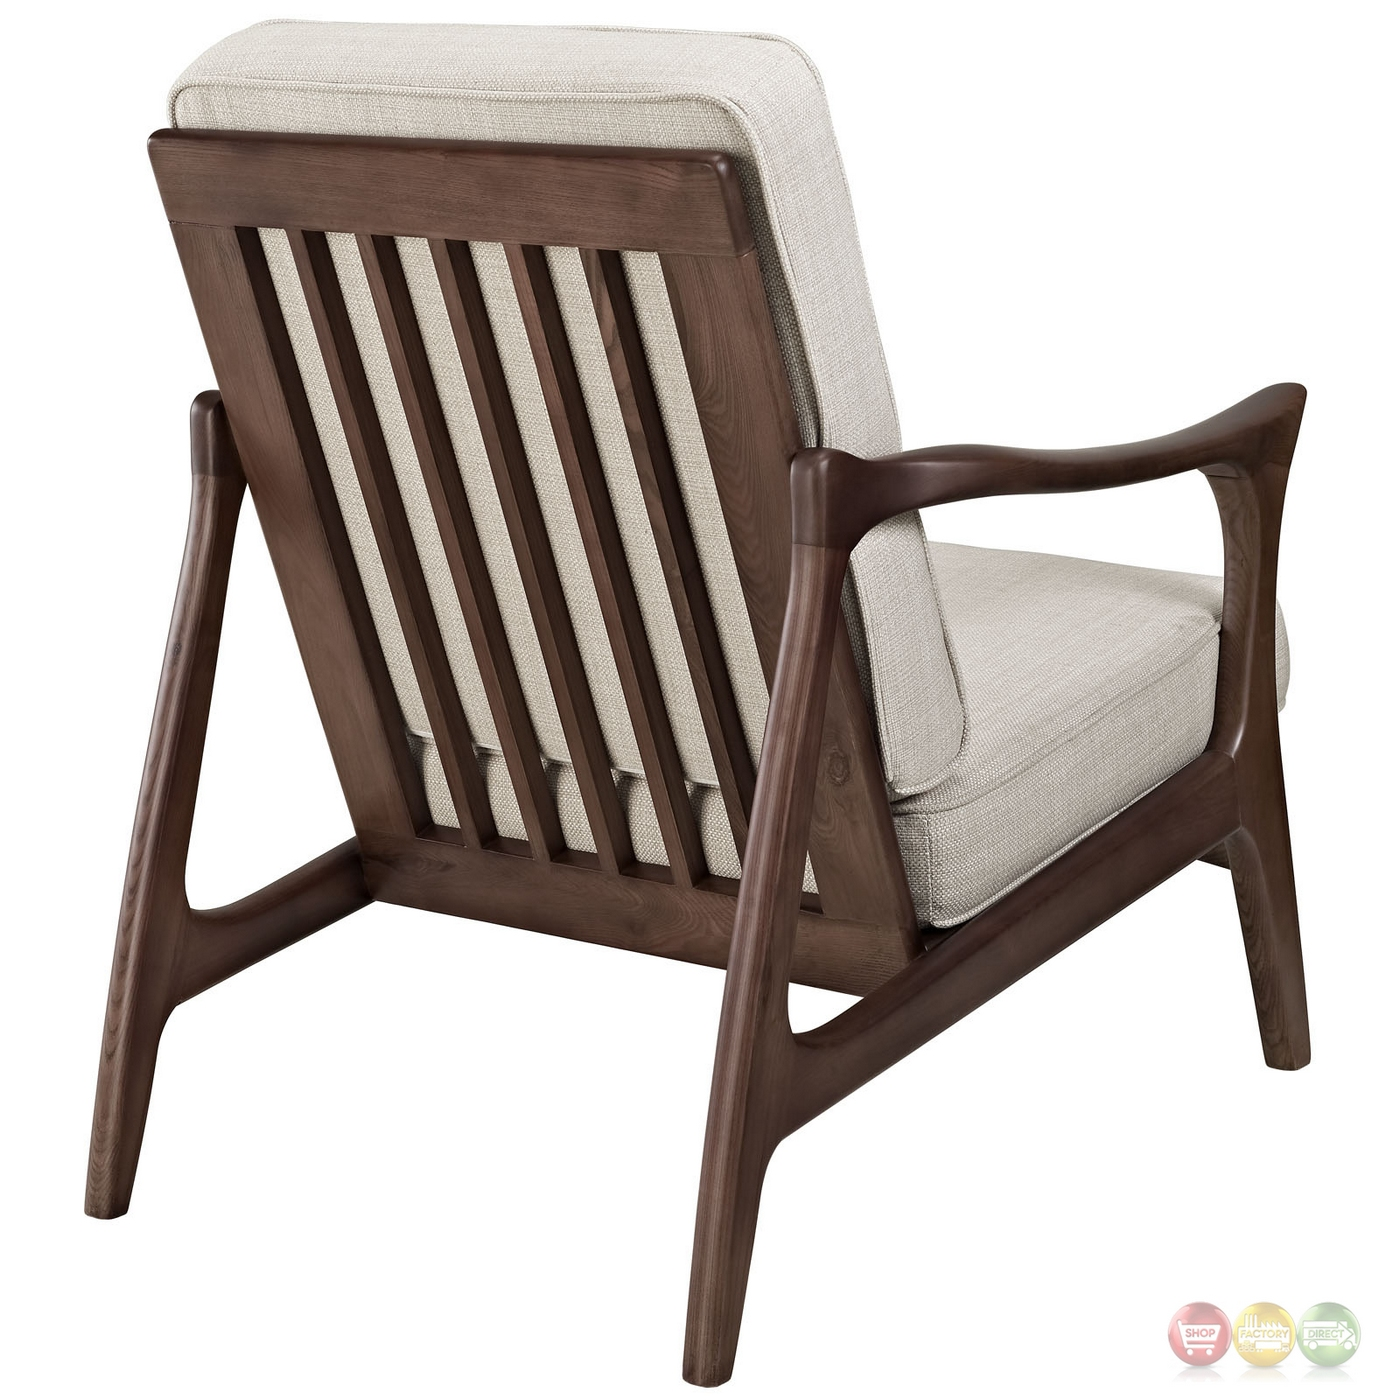 Wooden Lounge Chair Paddle Contemporary Wooden Lounge Chair With Upholstered